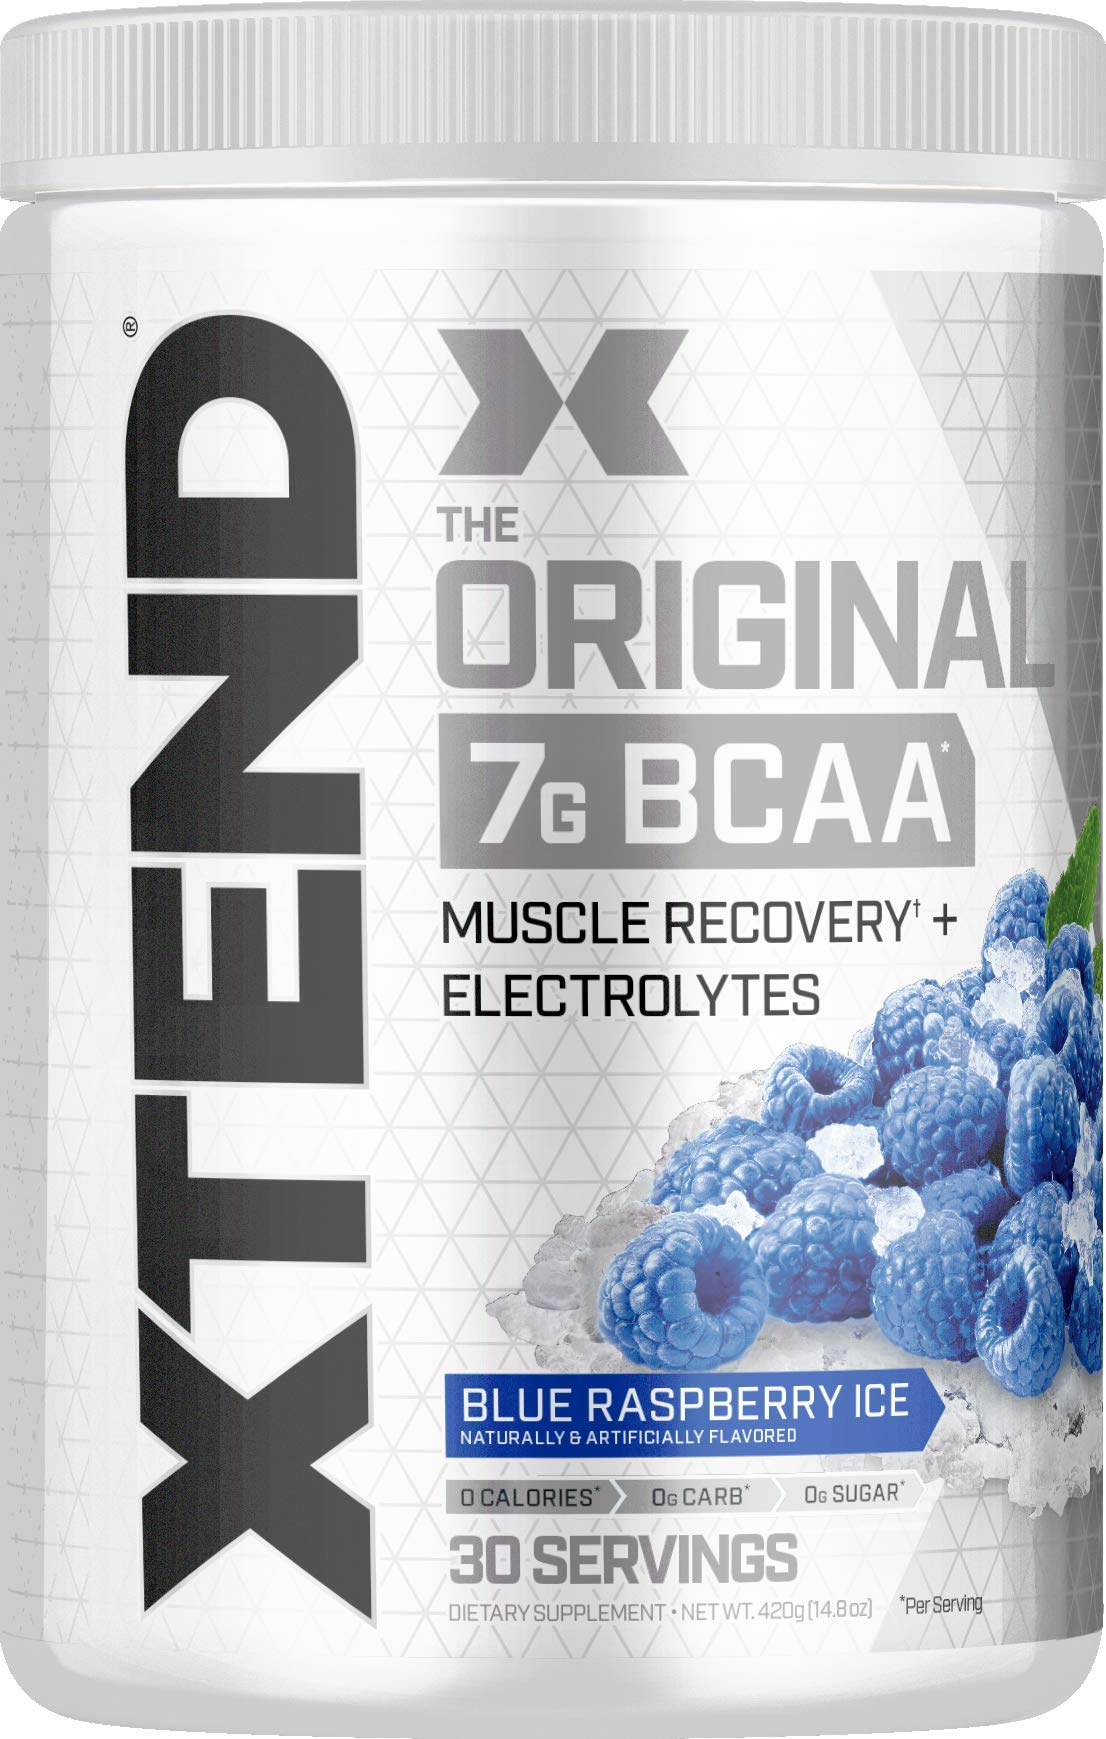 XTEND Original BCAA Powder Blue Raspberry Ice | Sugar Free Post Workout Muscle Recovery Drink with Amino Acids | 7g BCAAs for Men & Women | 30 Servings